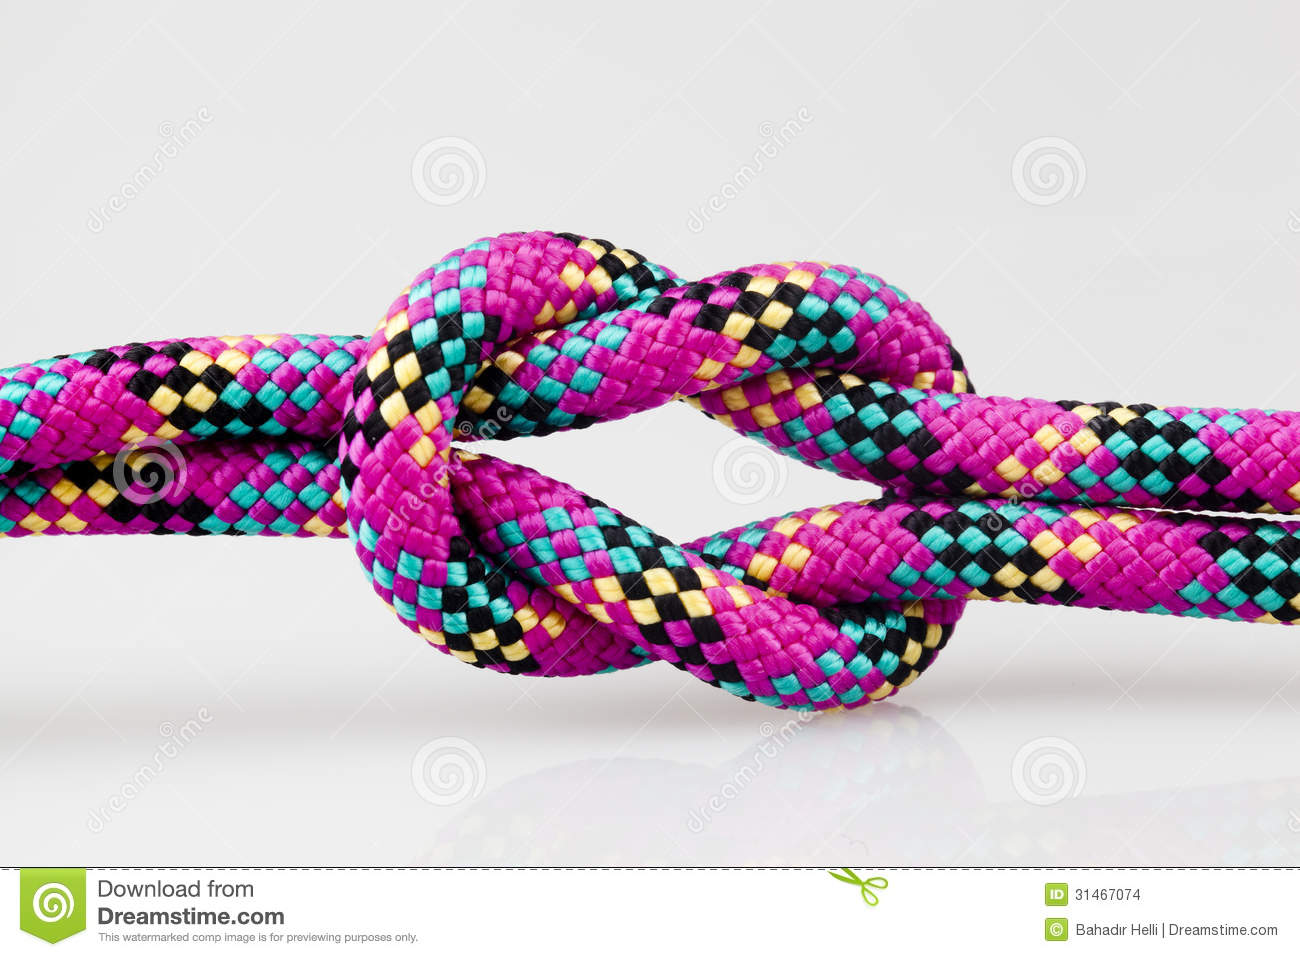 reputable site 6e626 aa21b Climbing rope stock photo. Image of objects, household ...